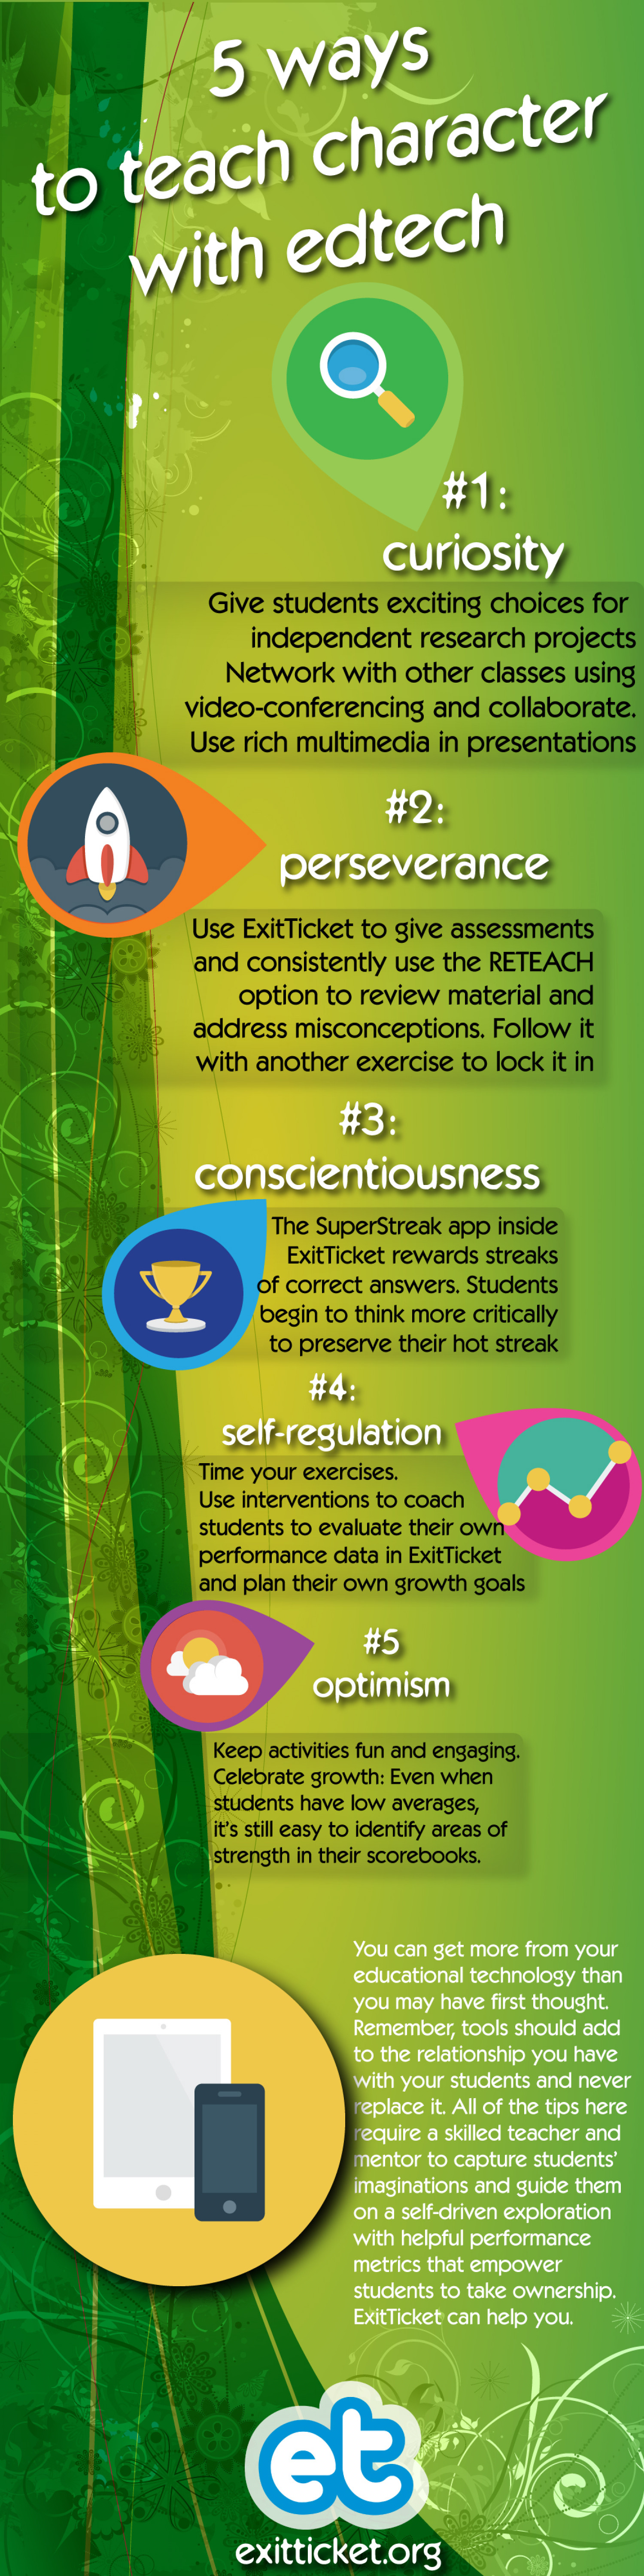 5 Ways to Teach Character with Edtech Infographic